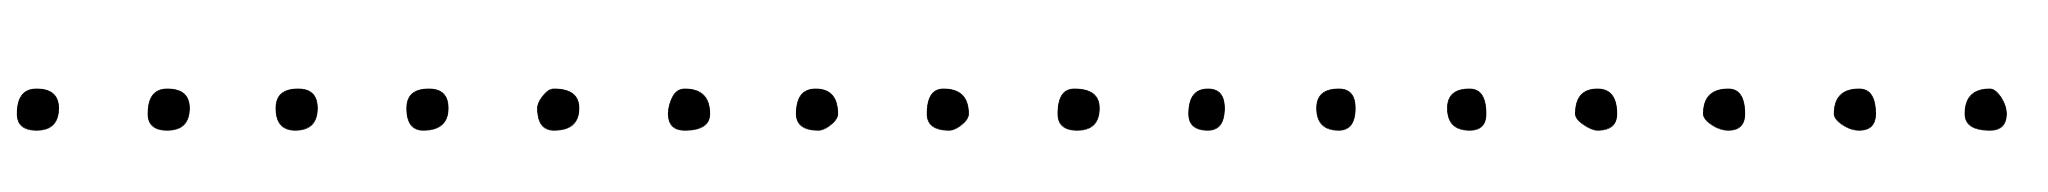 Dot divider png. Clipart dotted line marcos